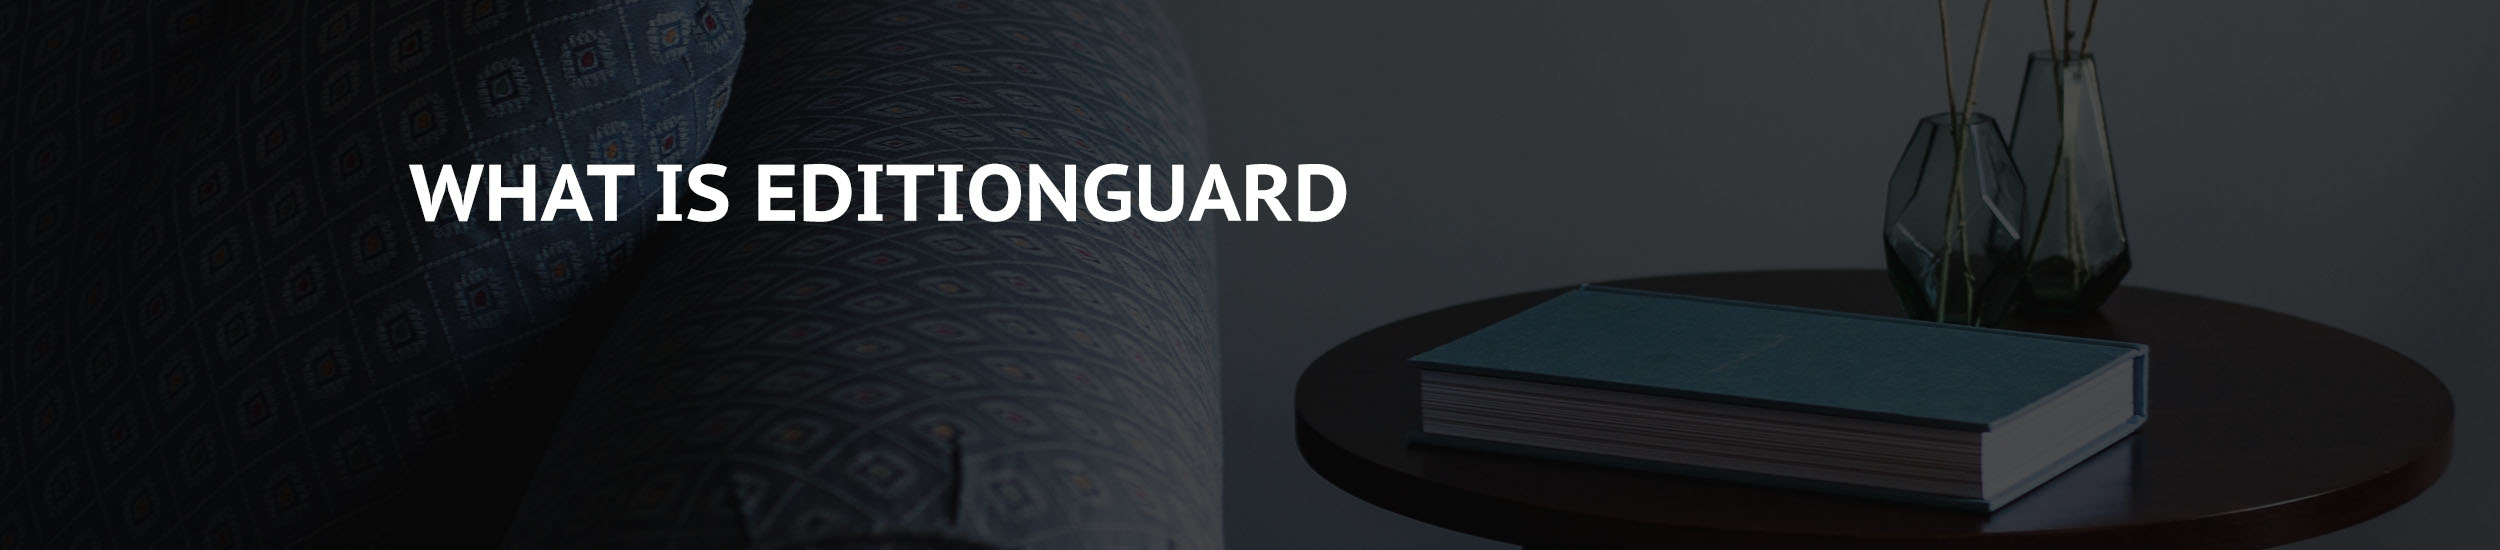 what is edition guard